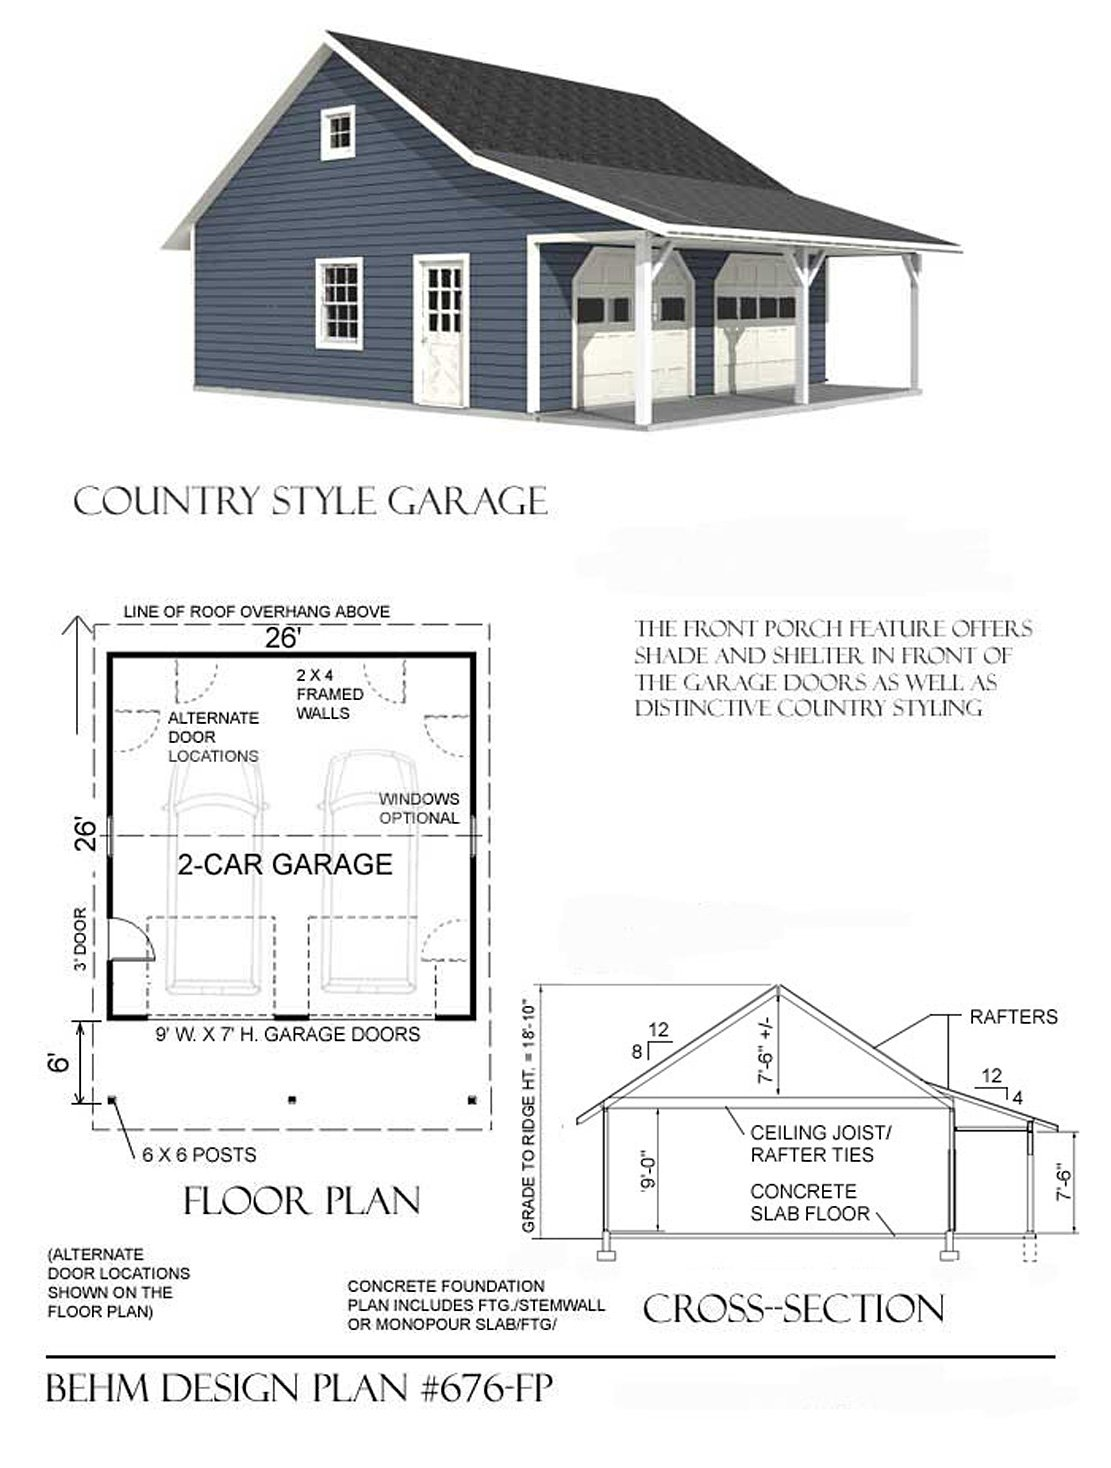 garage plans roomy 2 car garage plan with 6 ft front porch garage plans roomy 2 car garage plan with 6 ft front porch 676 fp 20 x 24 two car by behm design wall decor stickers amazon com